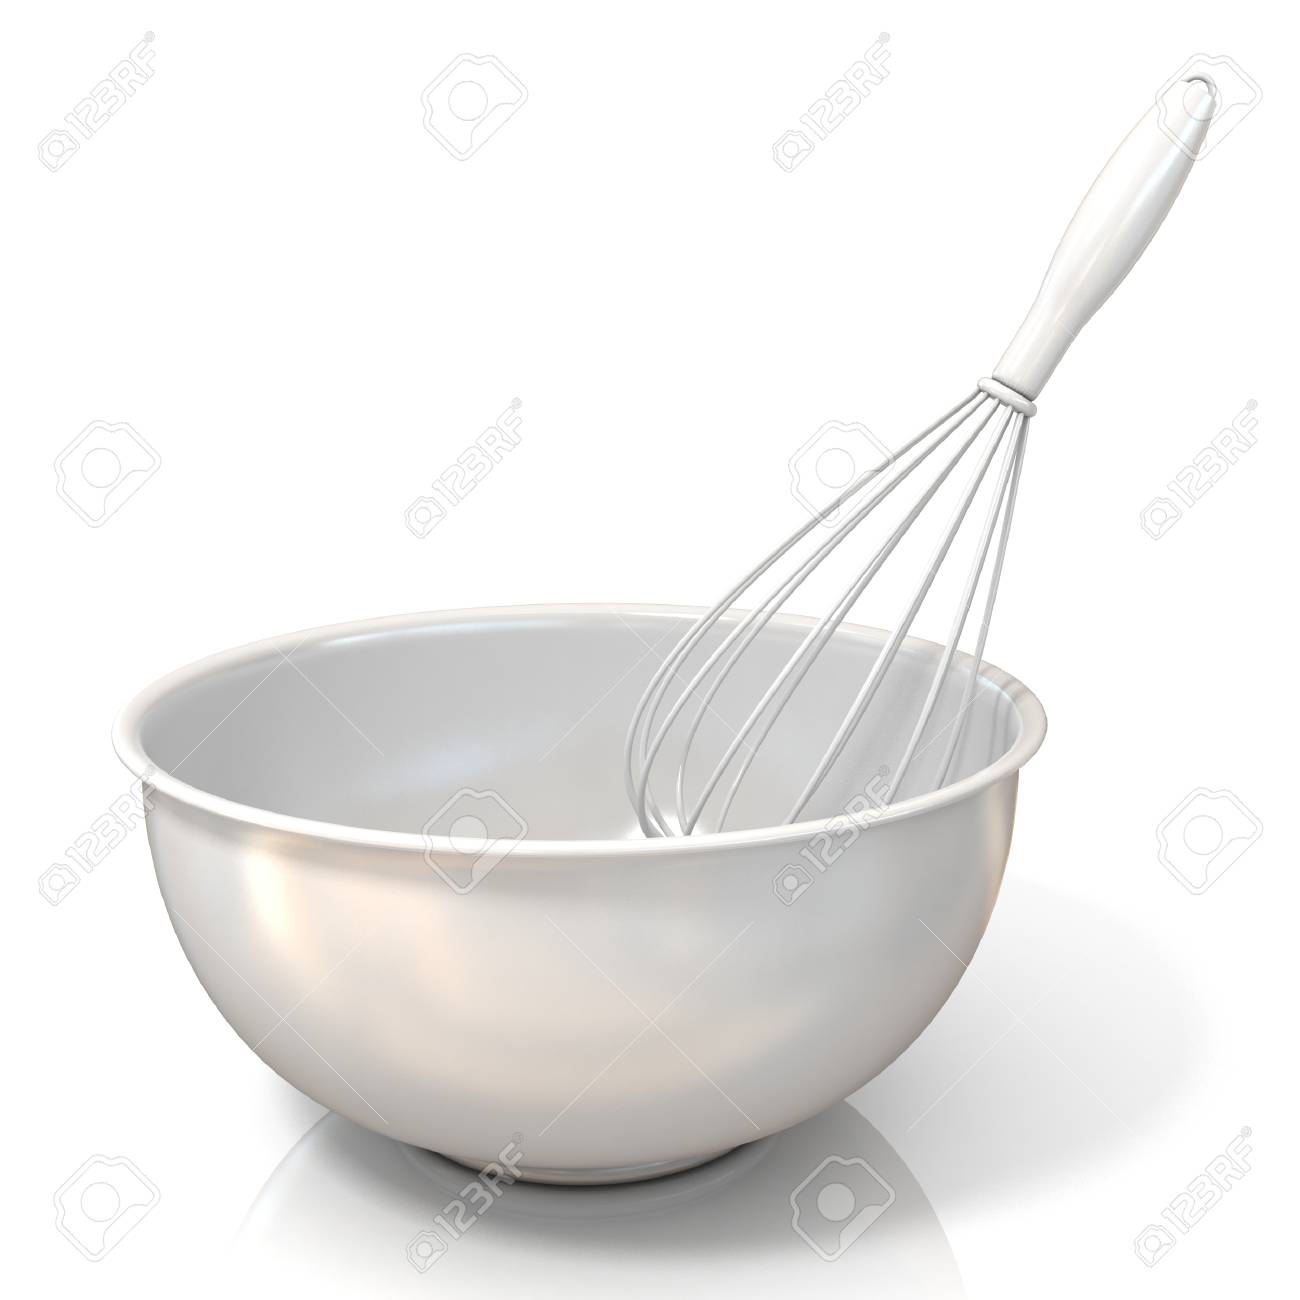 Bowl With A Wire Whisk, Isolated On White Stock Photo, Picture And ...